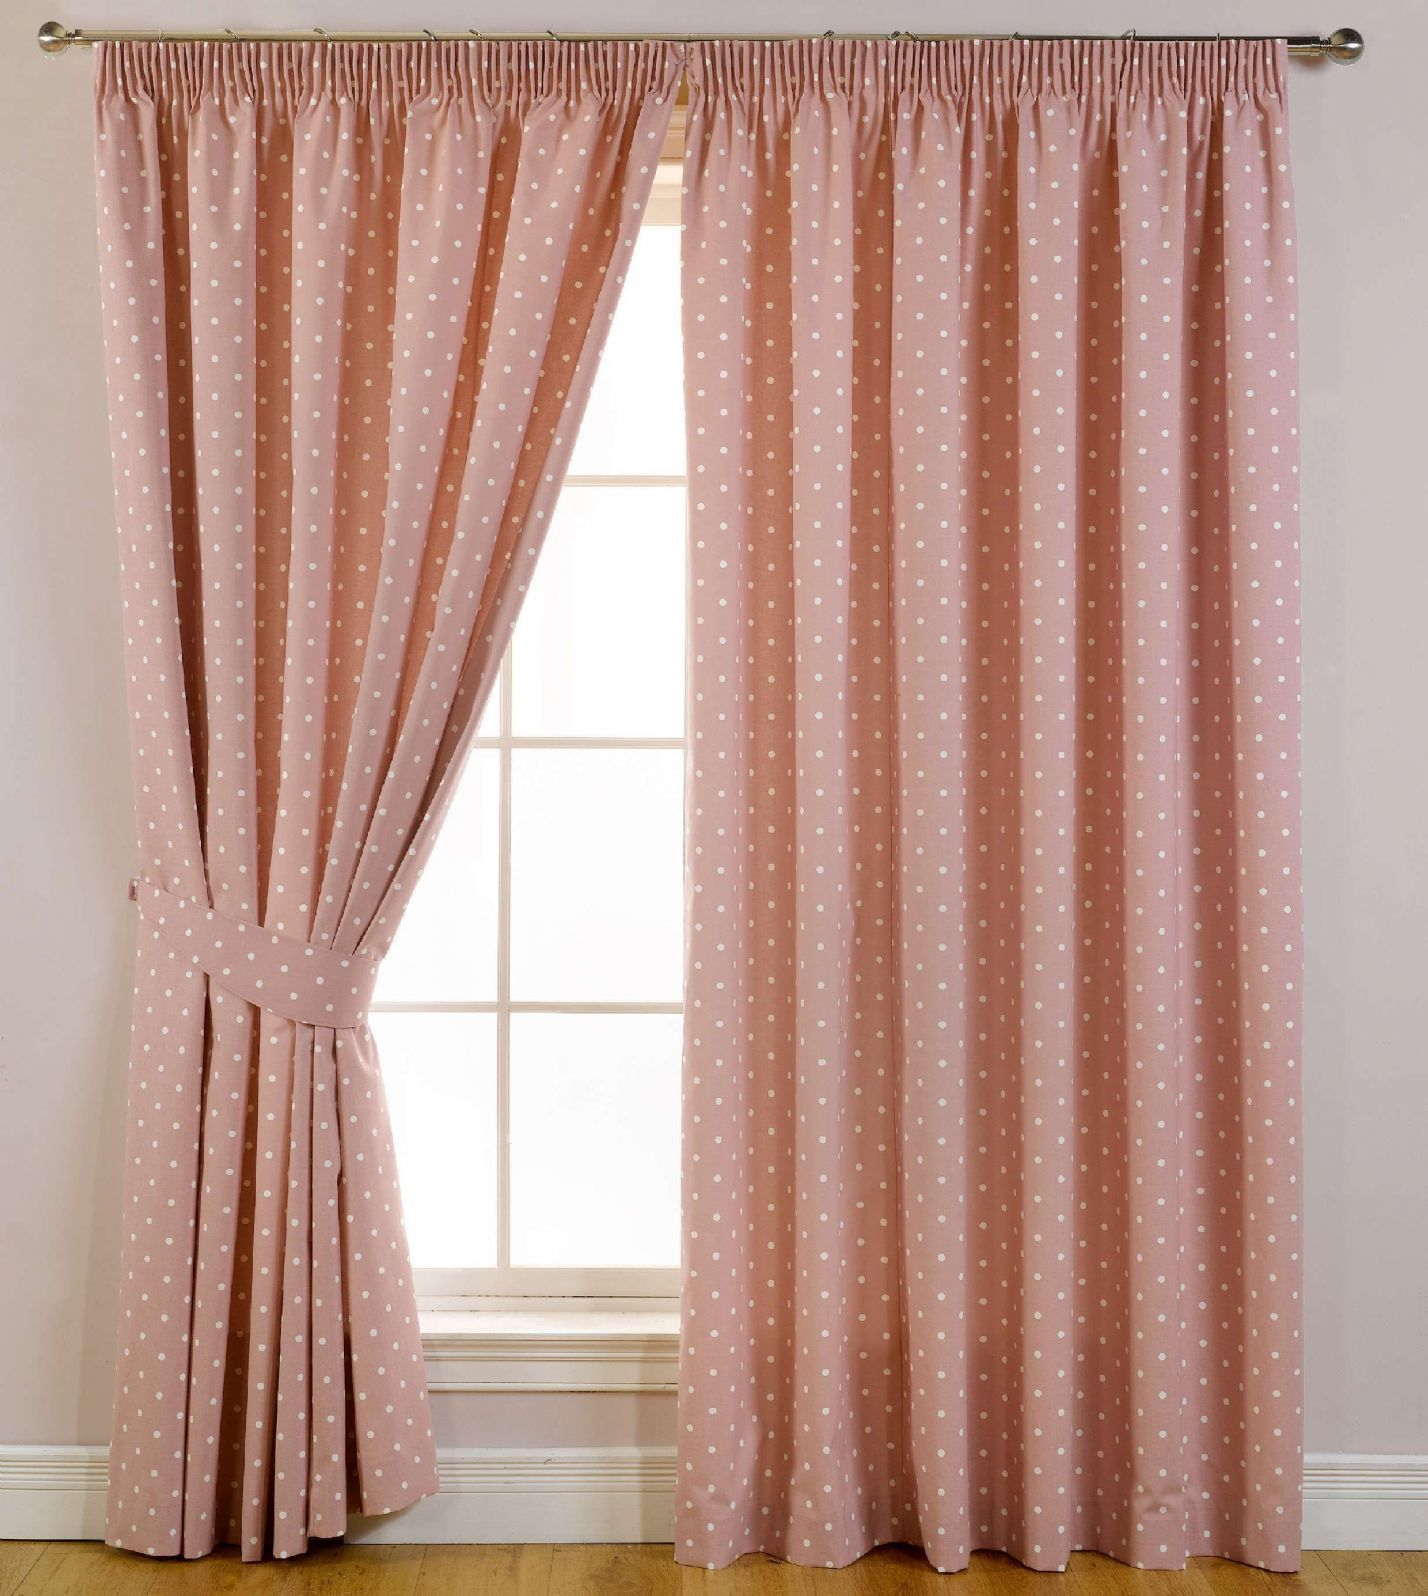 Delicieux Window Curtains For Bedroom